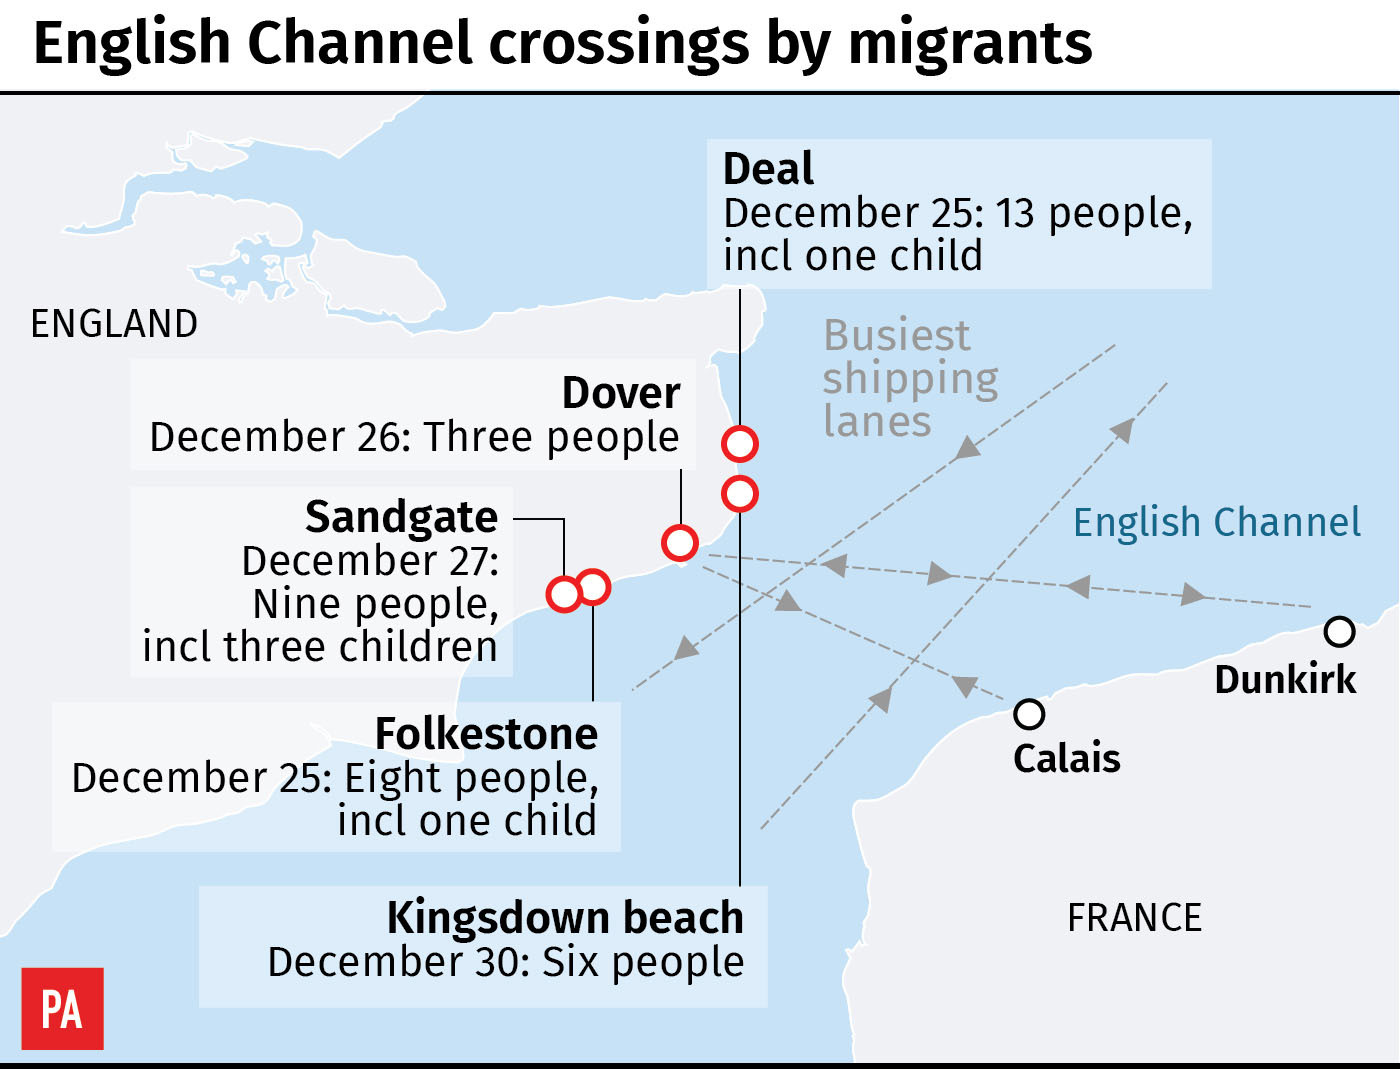 Briton and Iranian arrested in Manchester over migrant Channel crossings